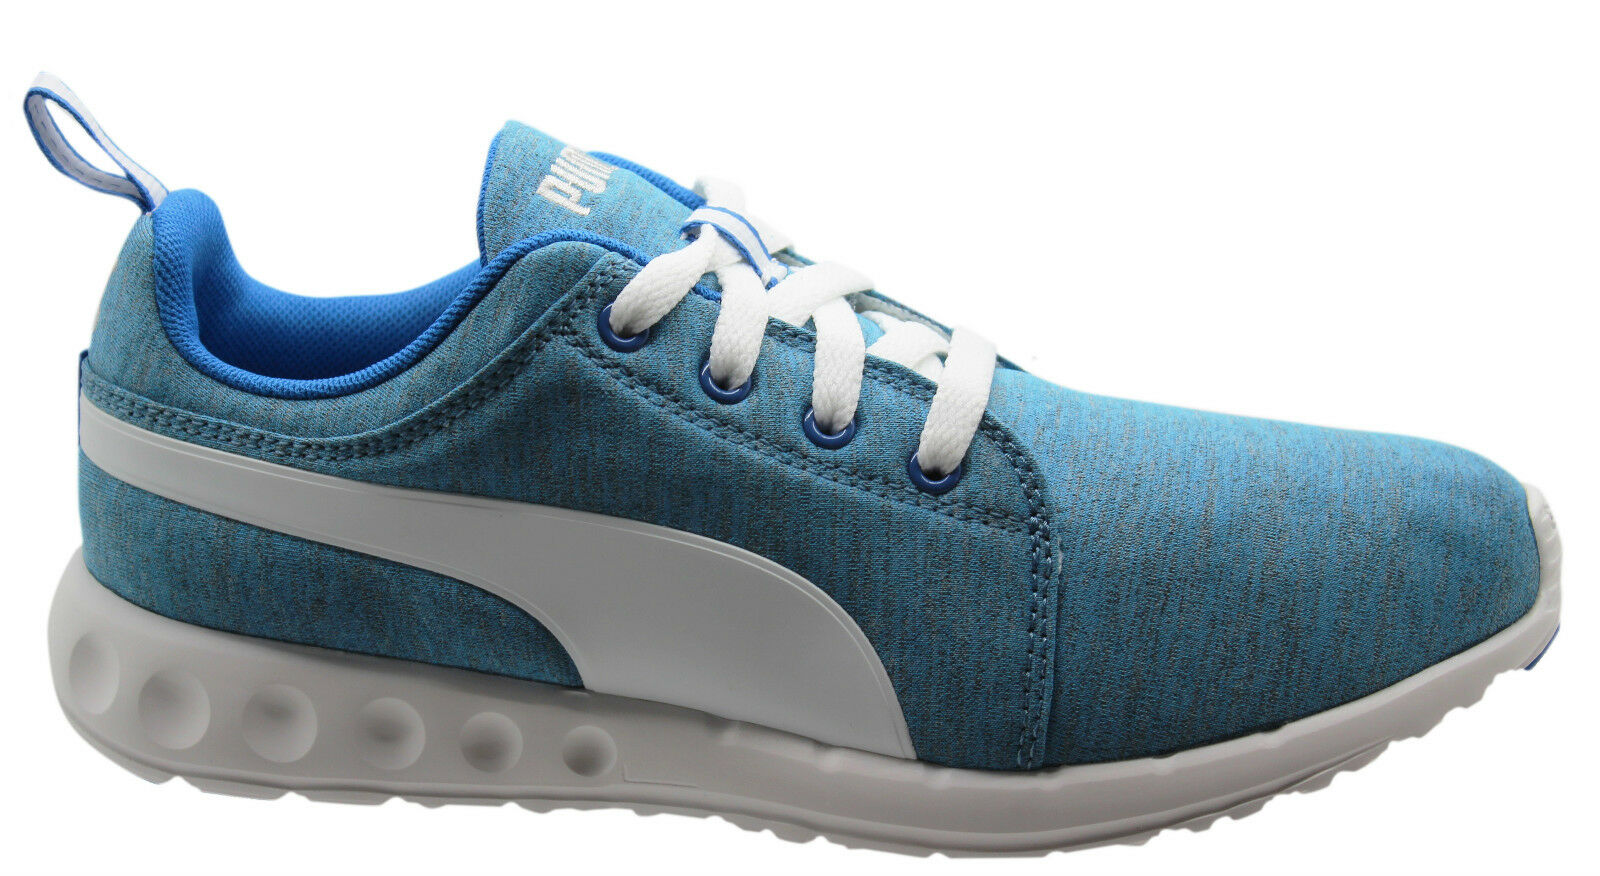 Puma Carson Runner Heather Mens Trainers Running Shoes Blue Lace ... c6cb4549c